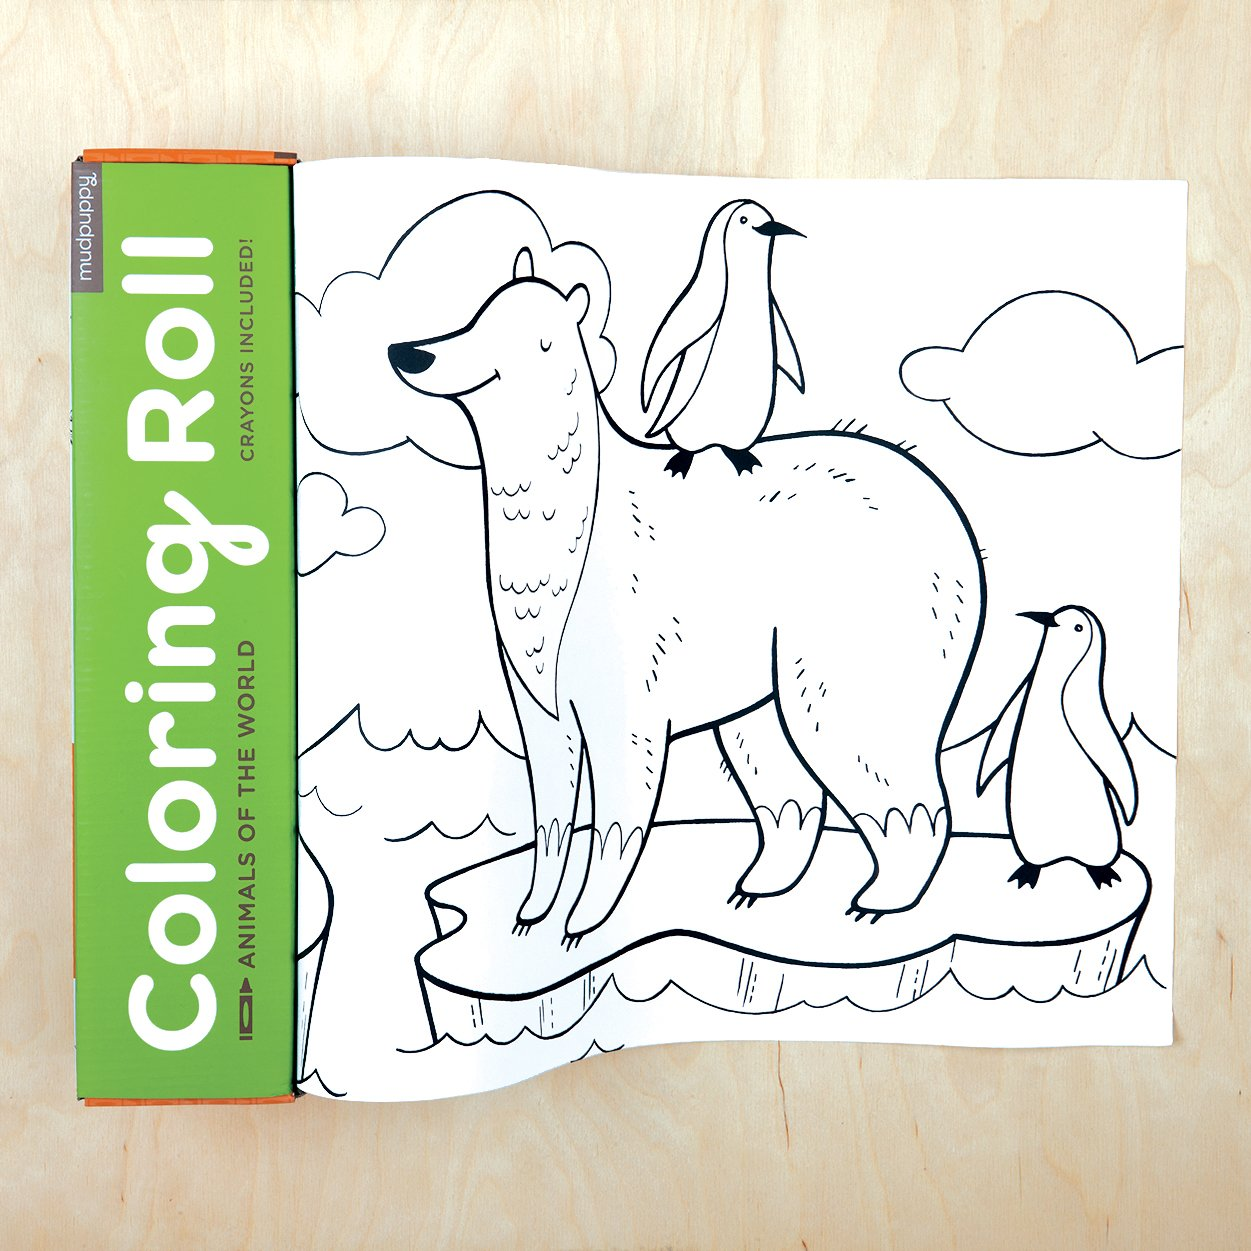 Amazon Mudpuppy 10 Foot Animals Coloring Roll Ndash Fun Artwork Of The World In A Continuous Paper For Ages 3